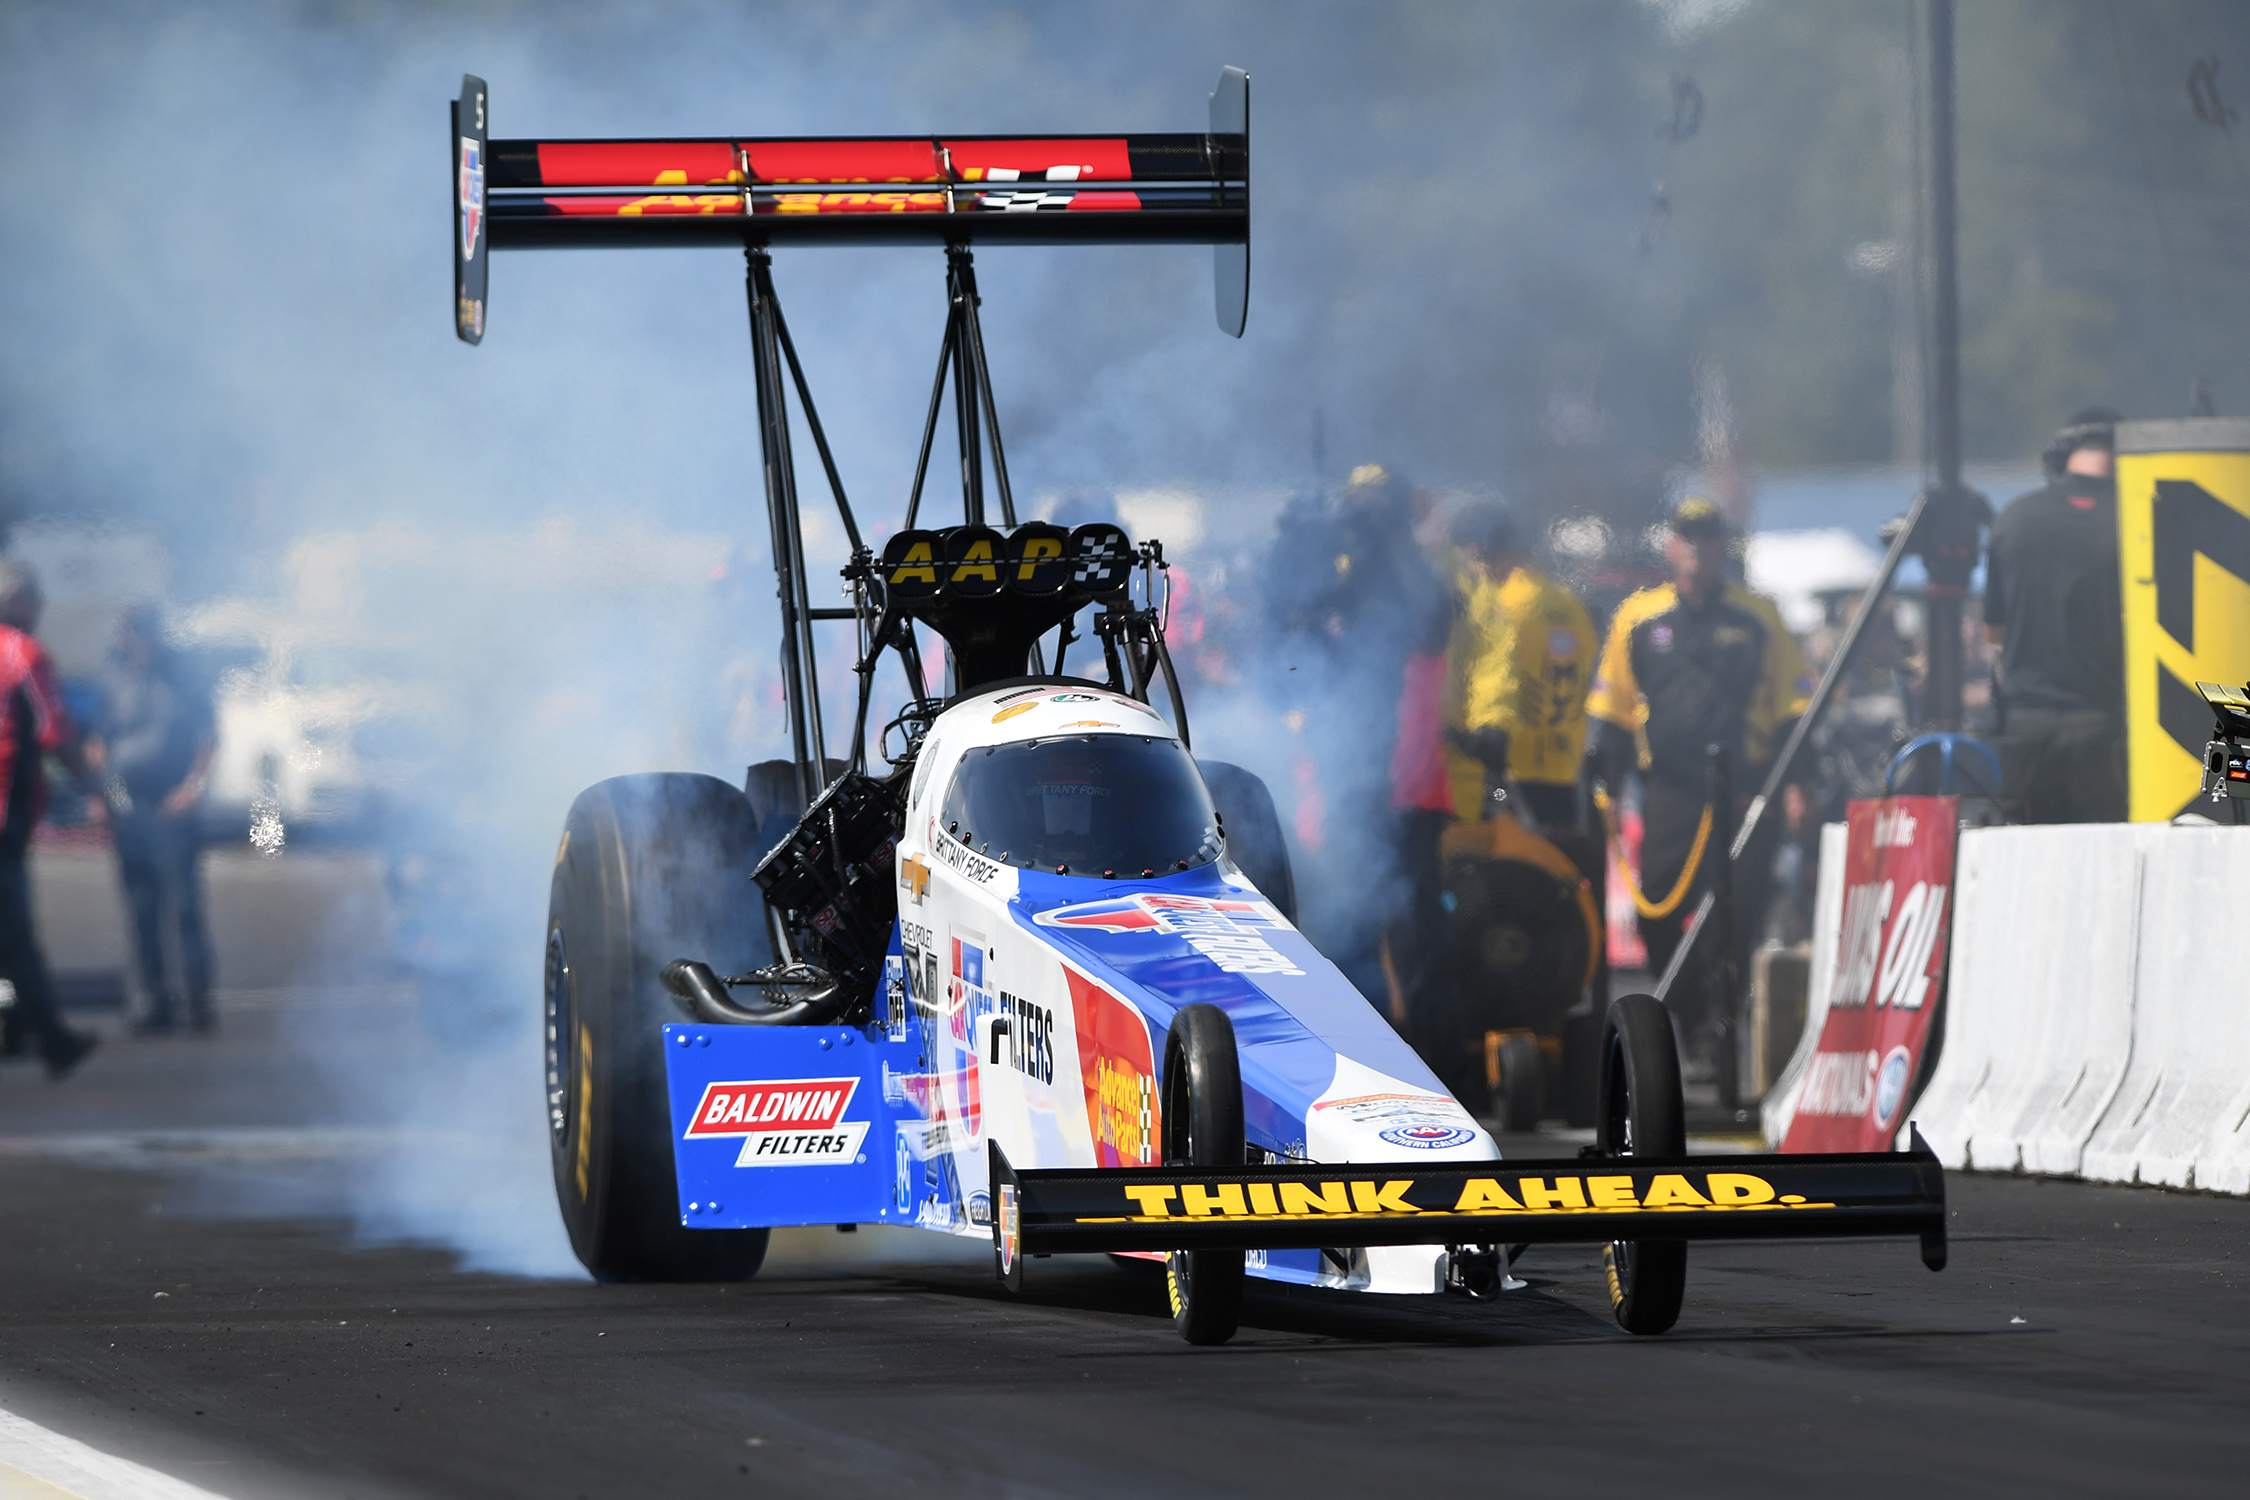 Top Fuel Dragster pilot Brittany Force racing on Saturday at the 2019 Lucas Oil NHRA Nationals